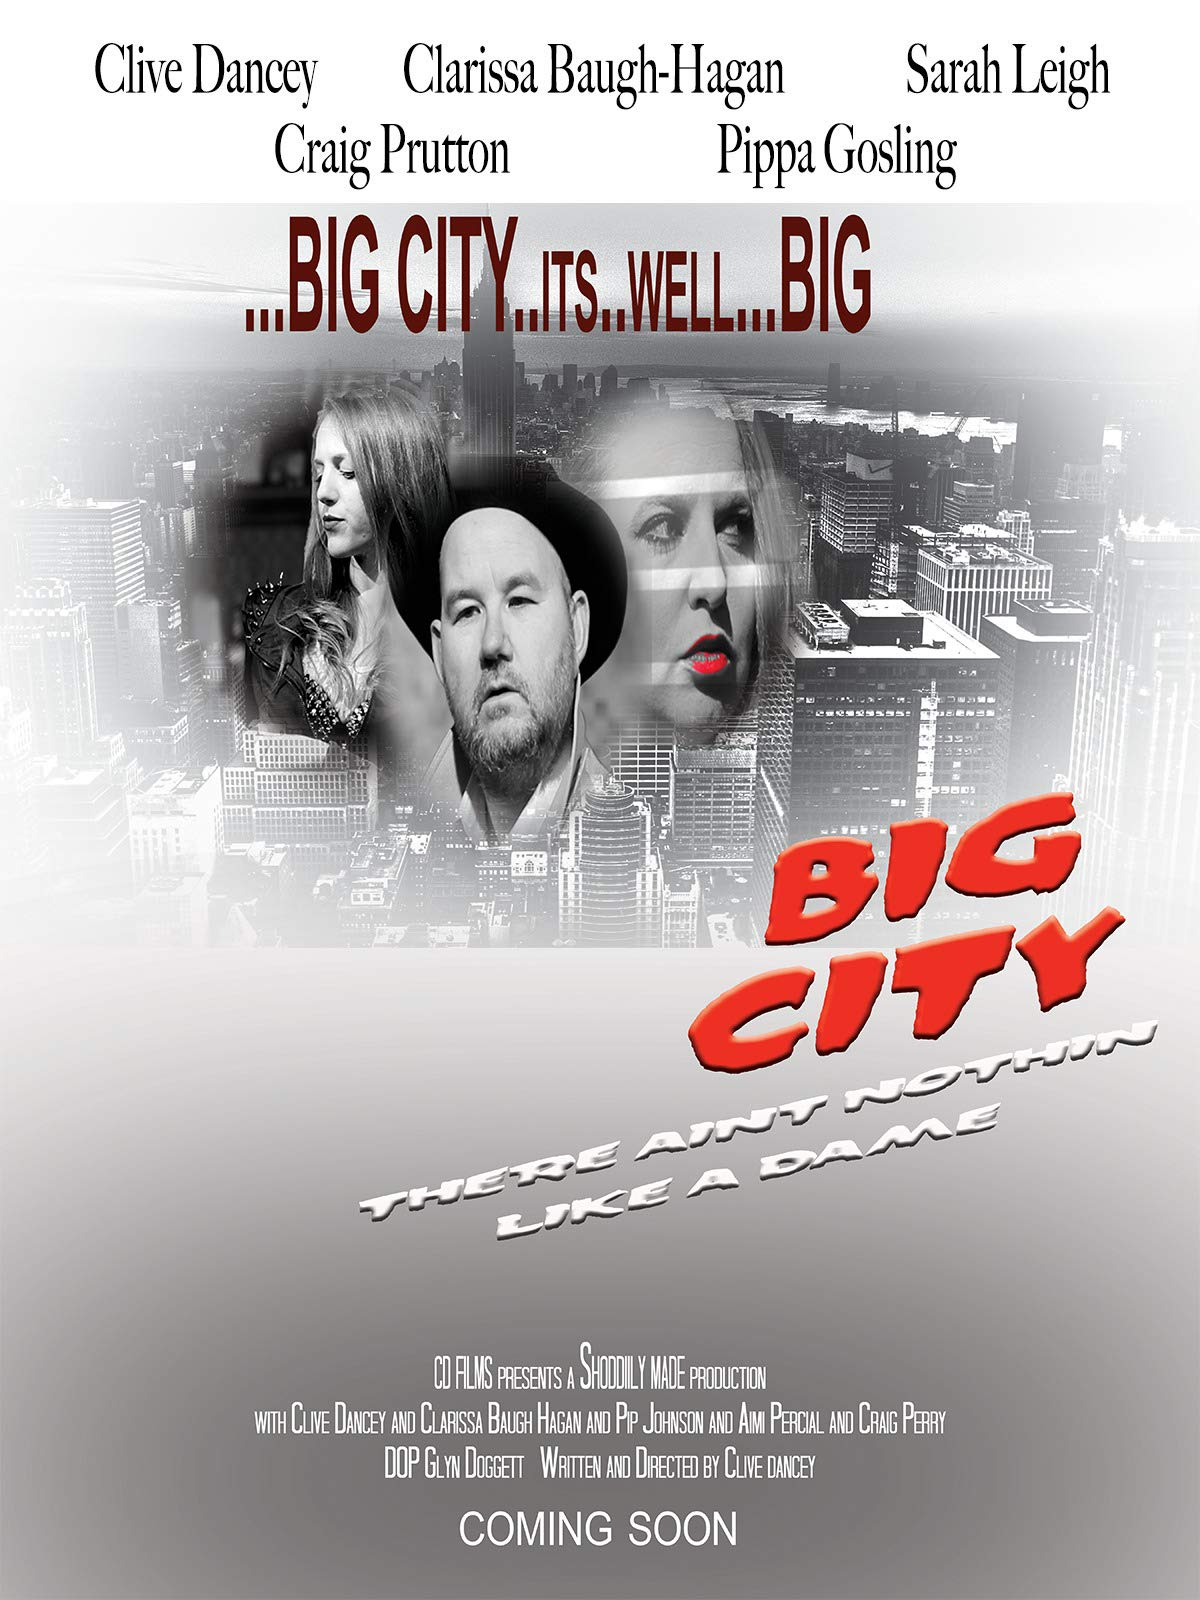 Big City - There aint nothin like a dame